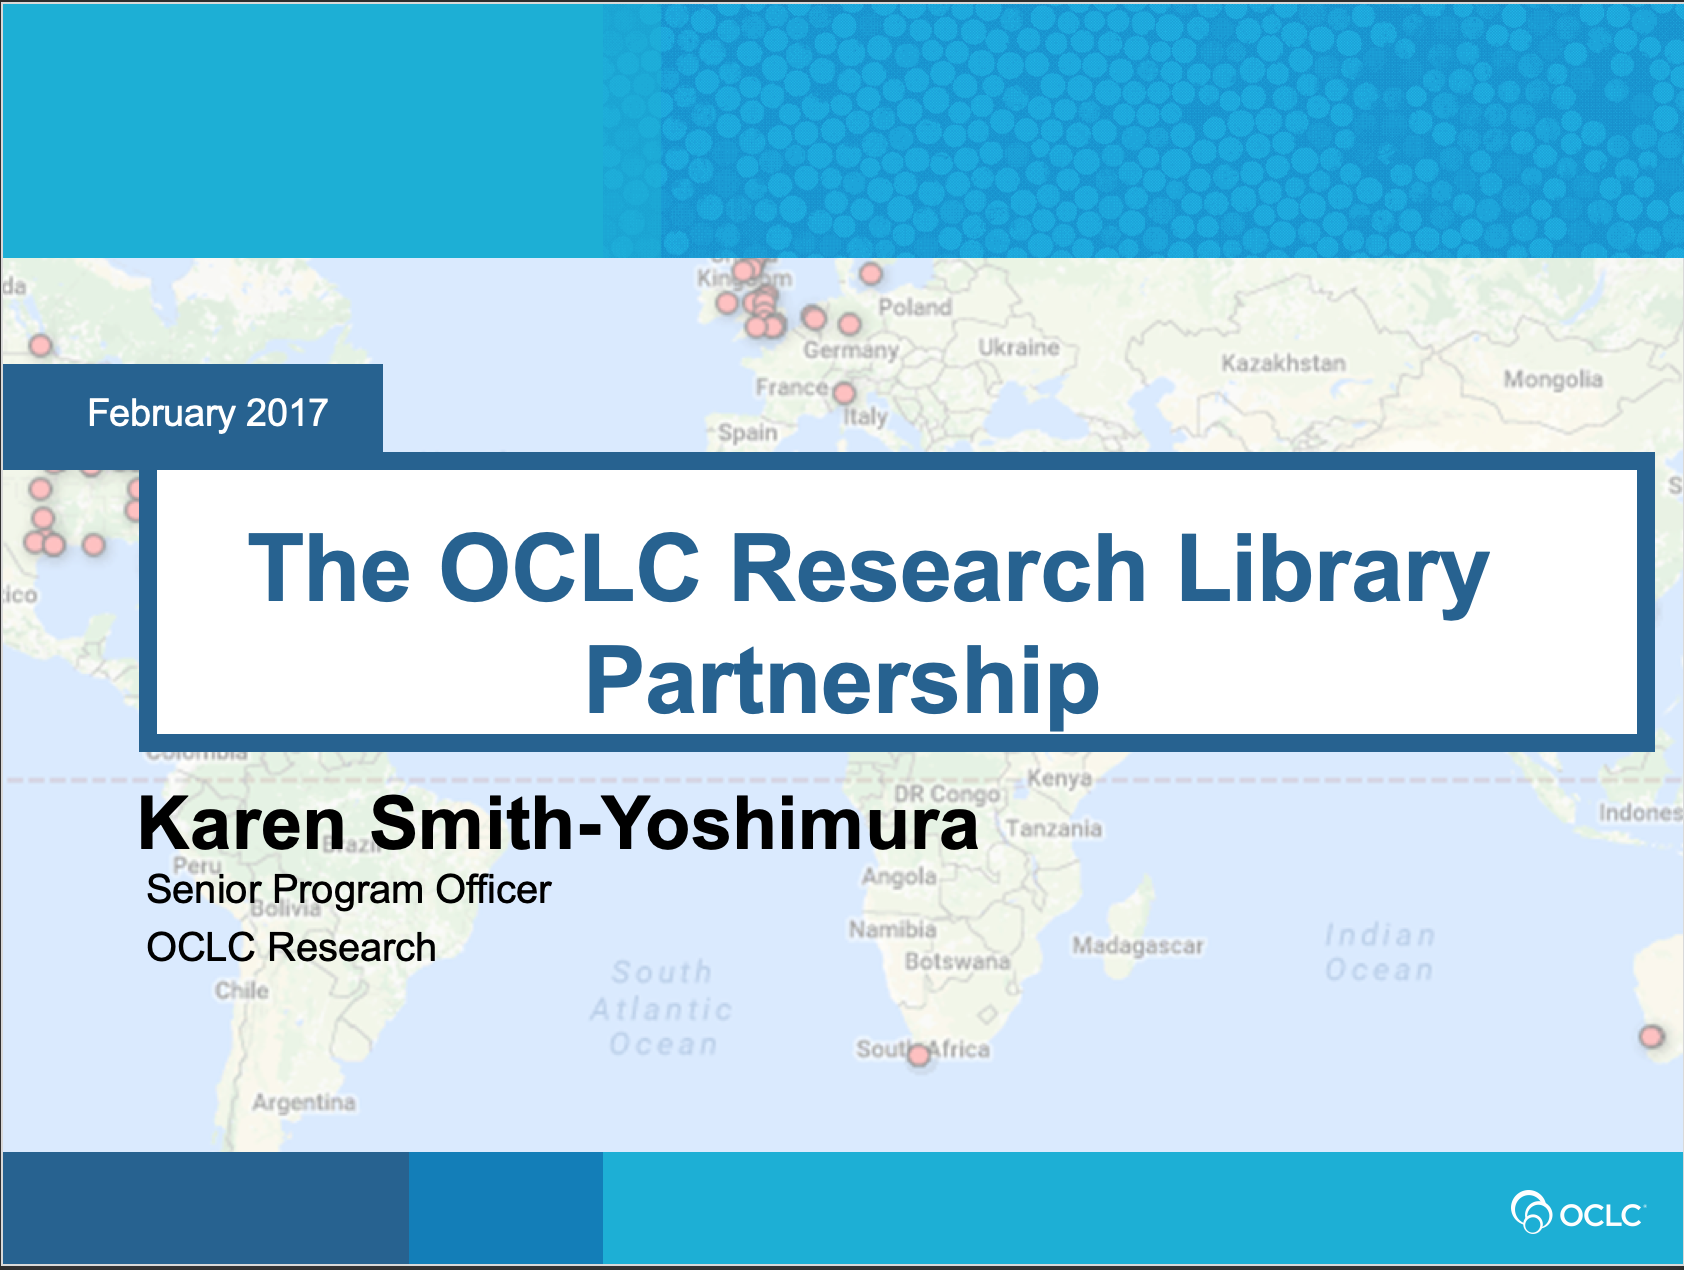 The OCLC Research Library Partnership